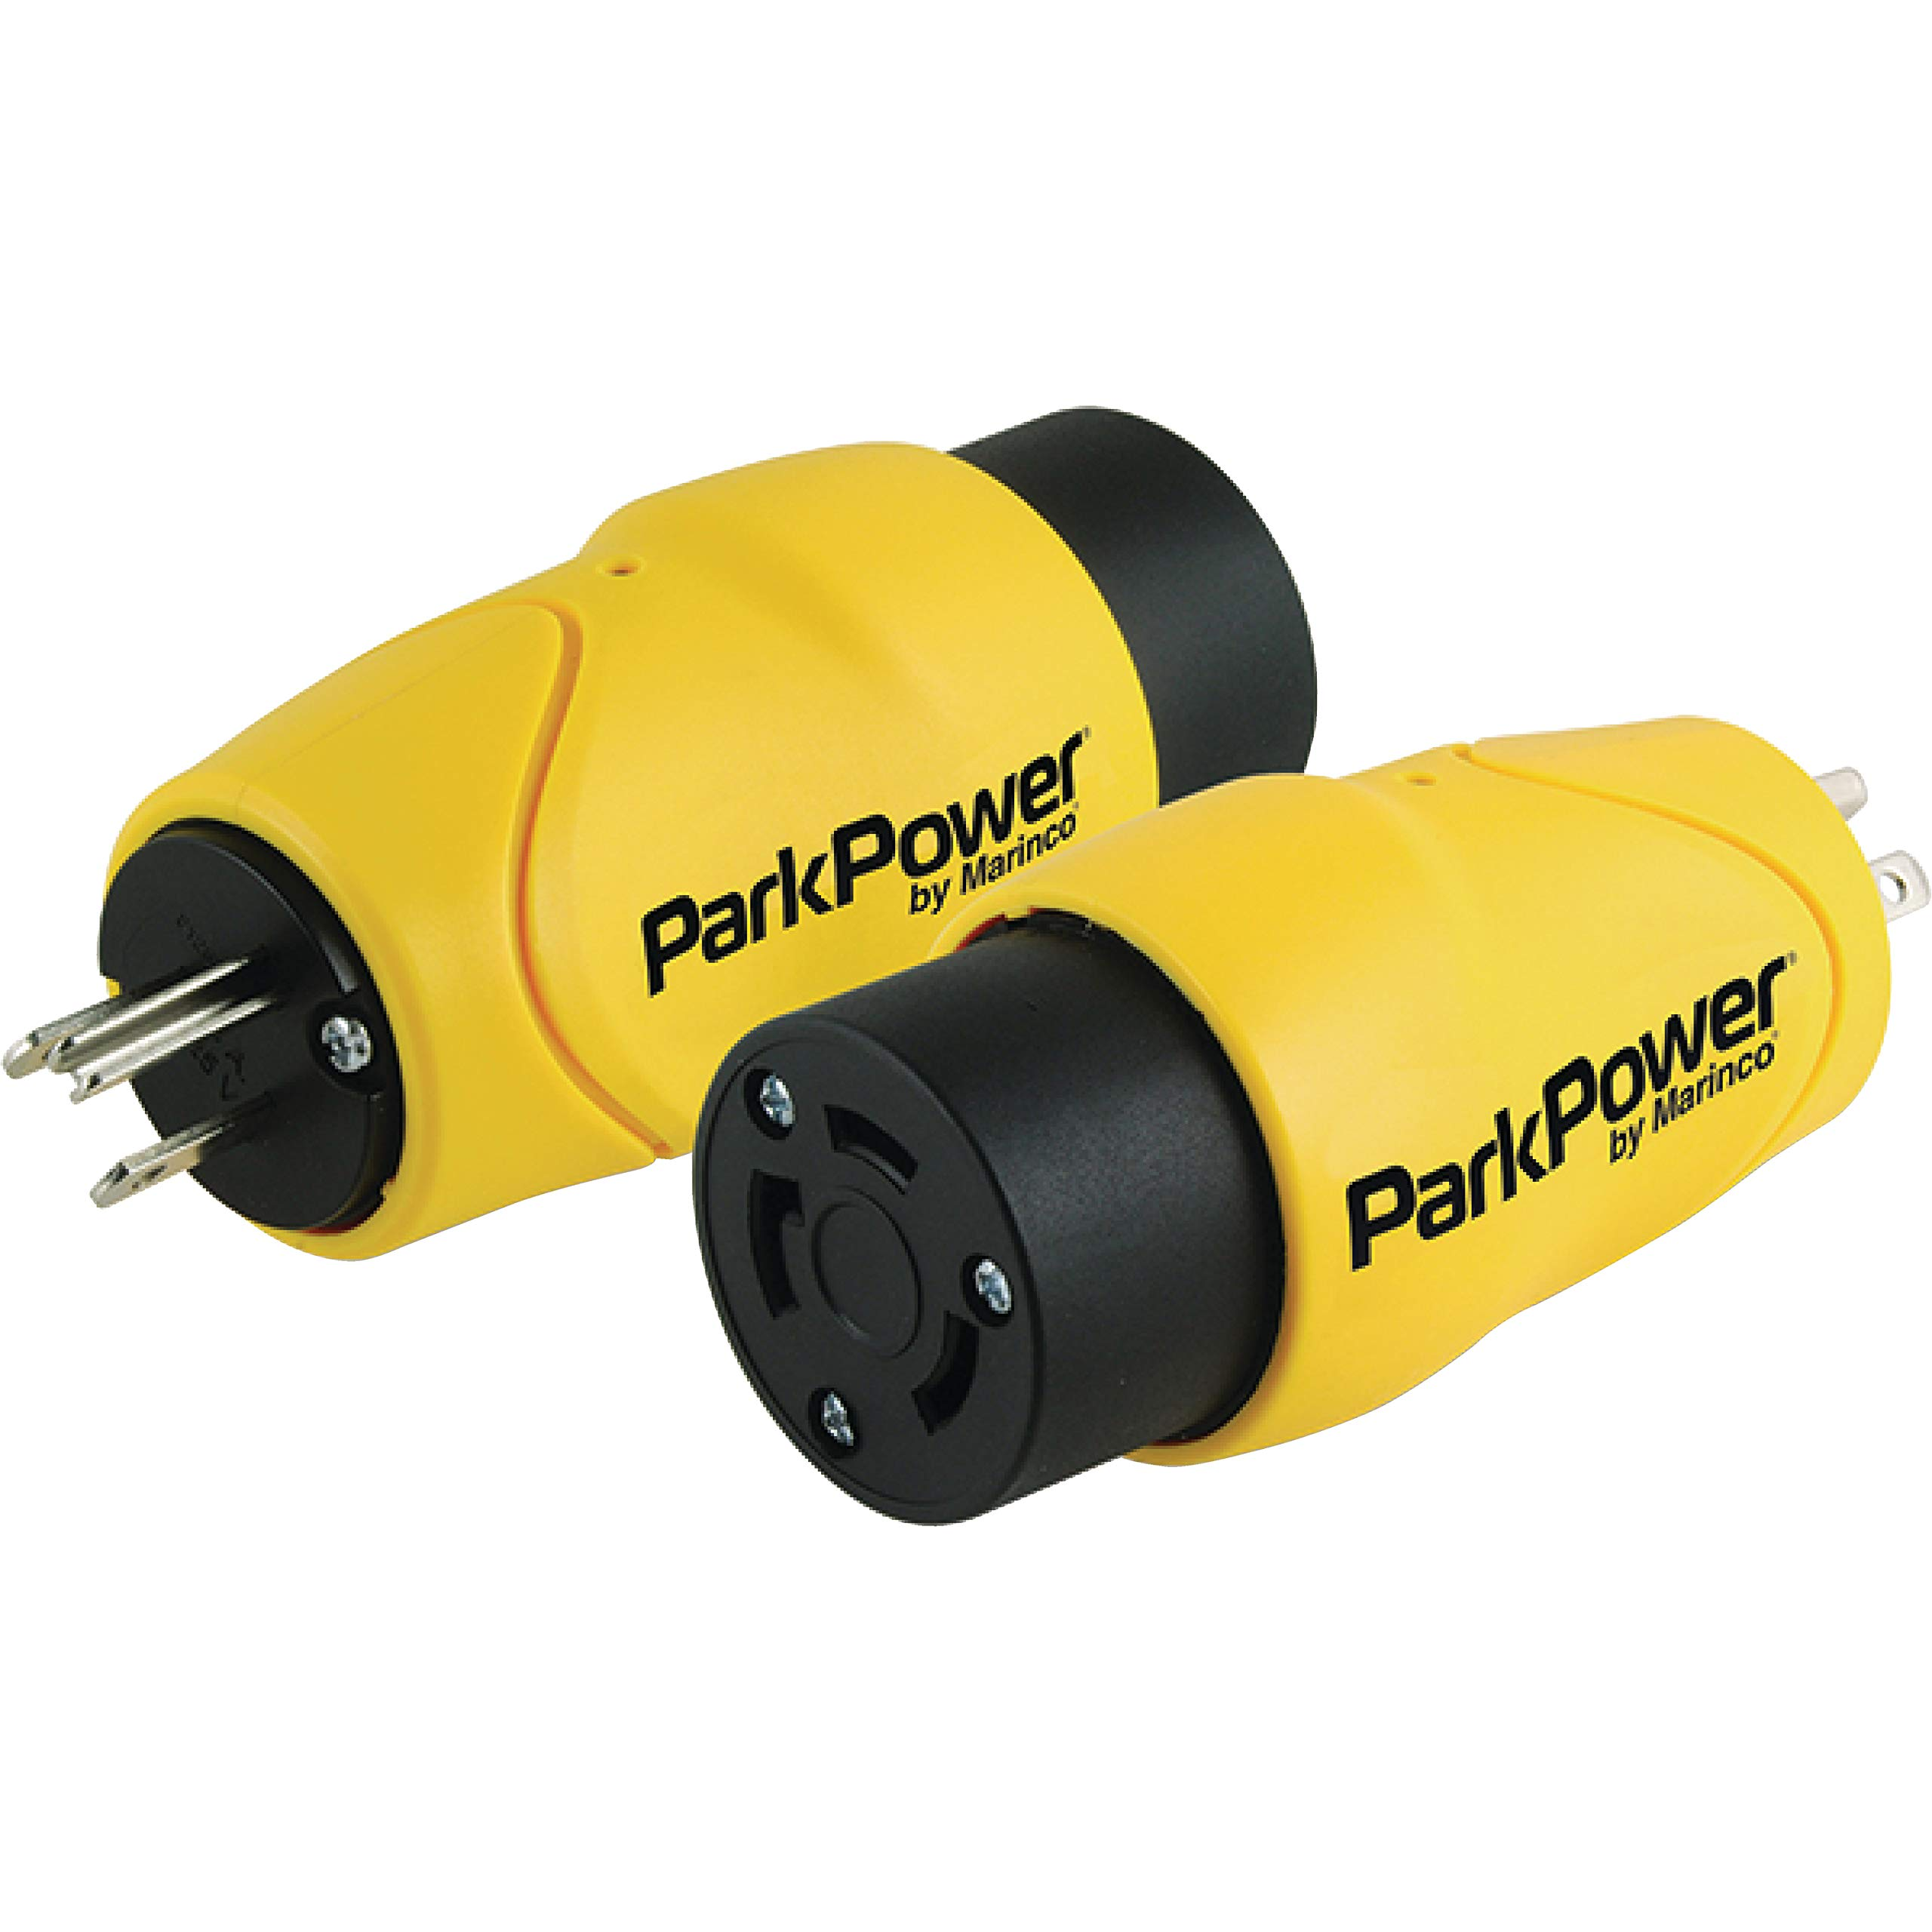 Marinco ParkPower 15 Amp, 125V Straight-Blade Male Plug to 30 Amp, 125V Locking Female Side One-Piece Twist-Lock Adapter